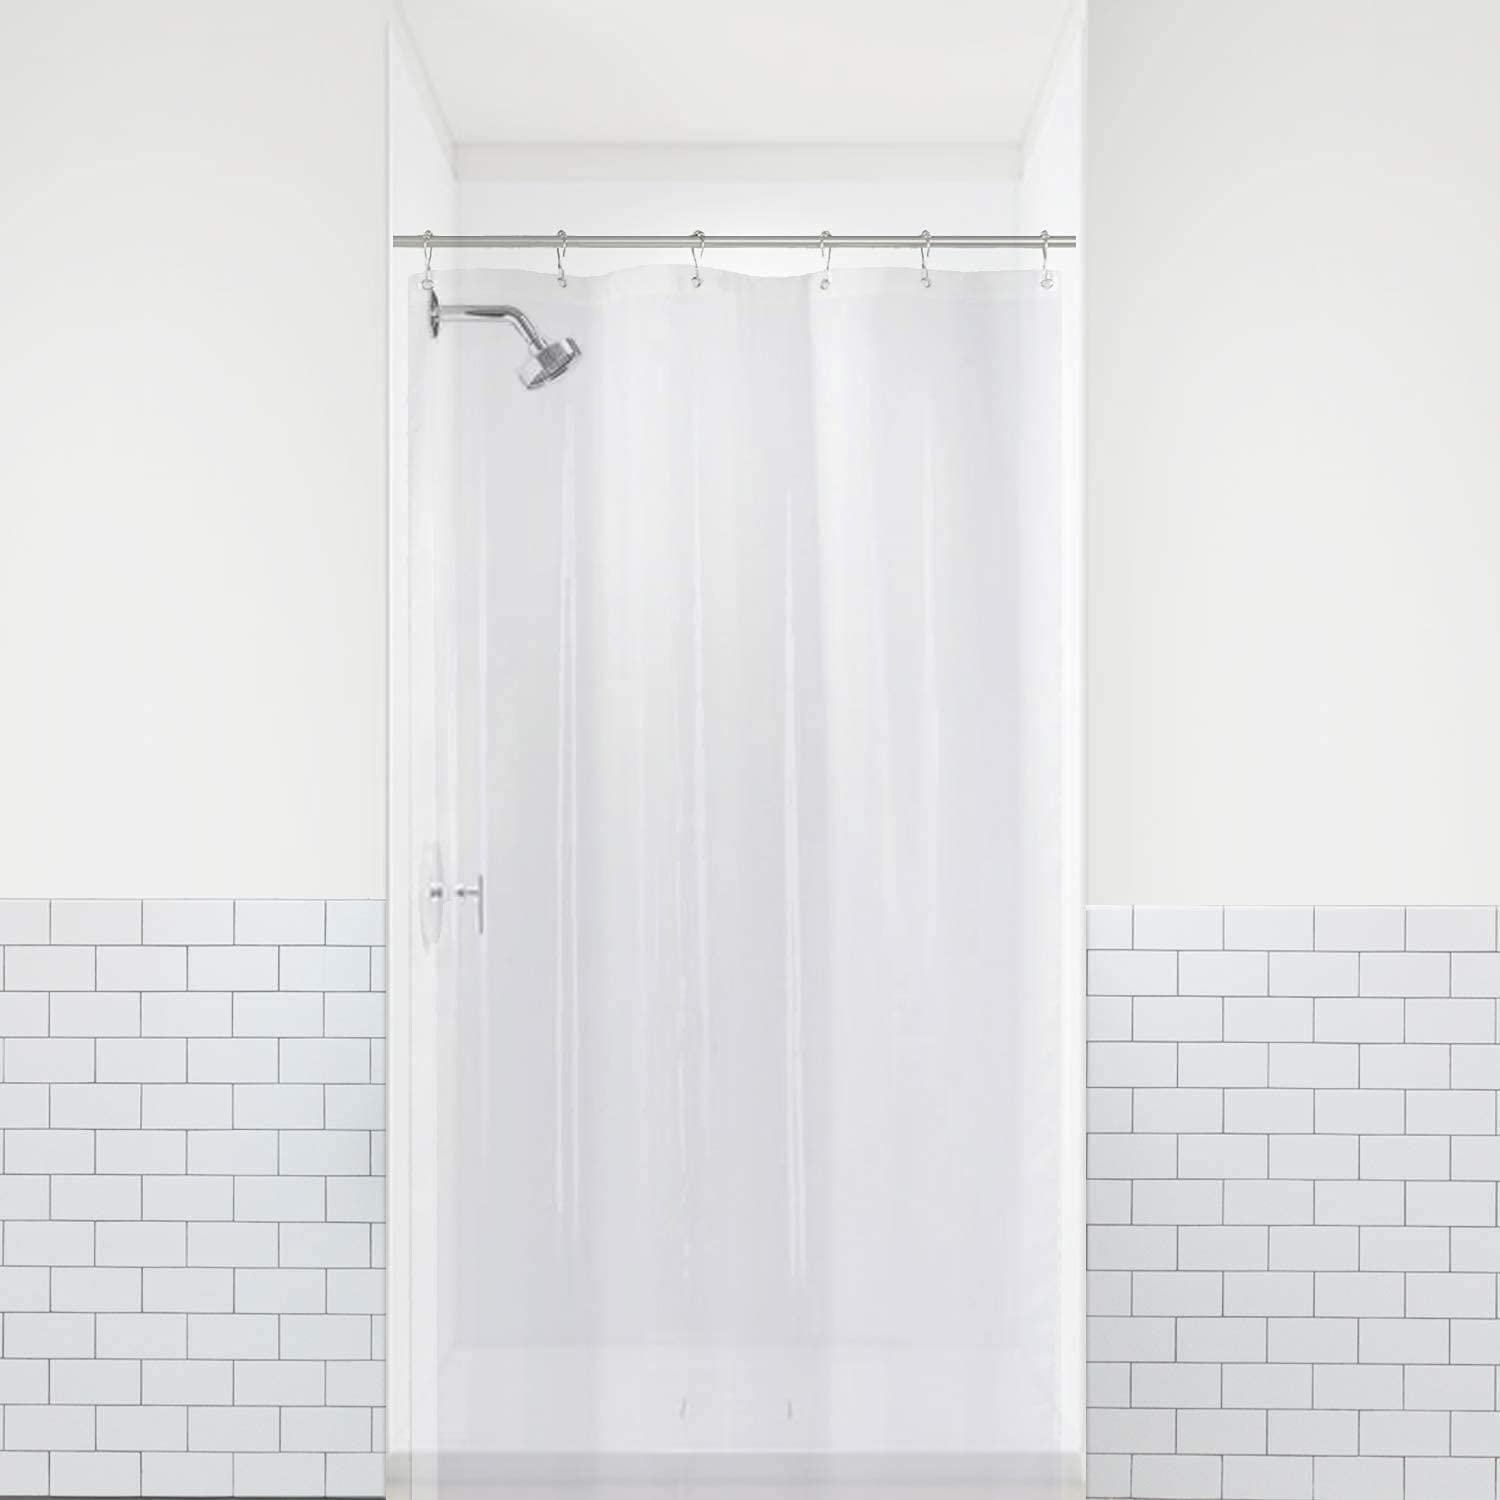 LiBa Mildew Resistant Anti-Microbial PEVA 8G Shower Curtain Liner 36x72, Clear